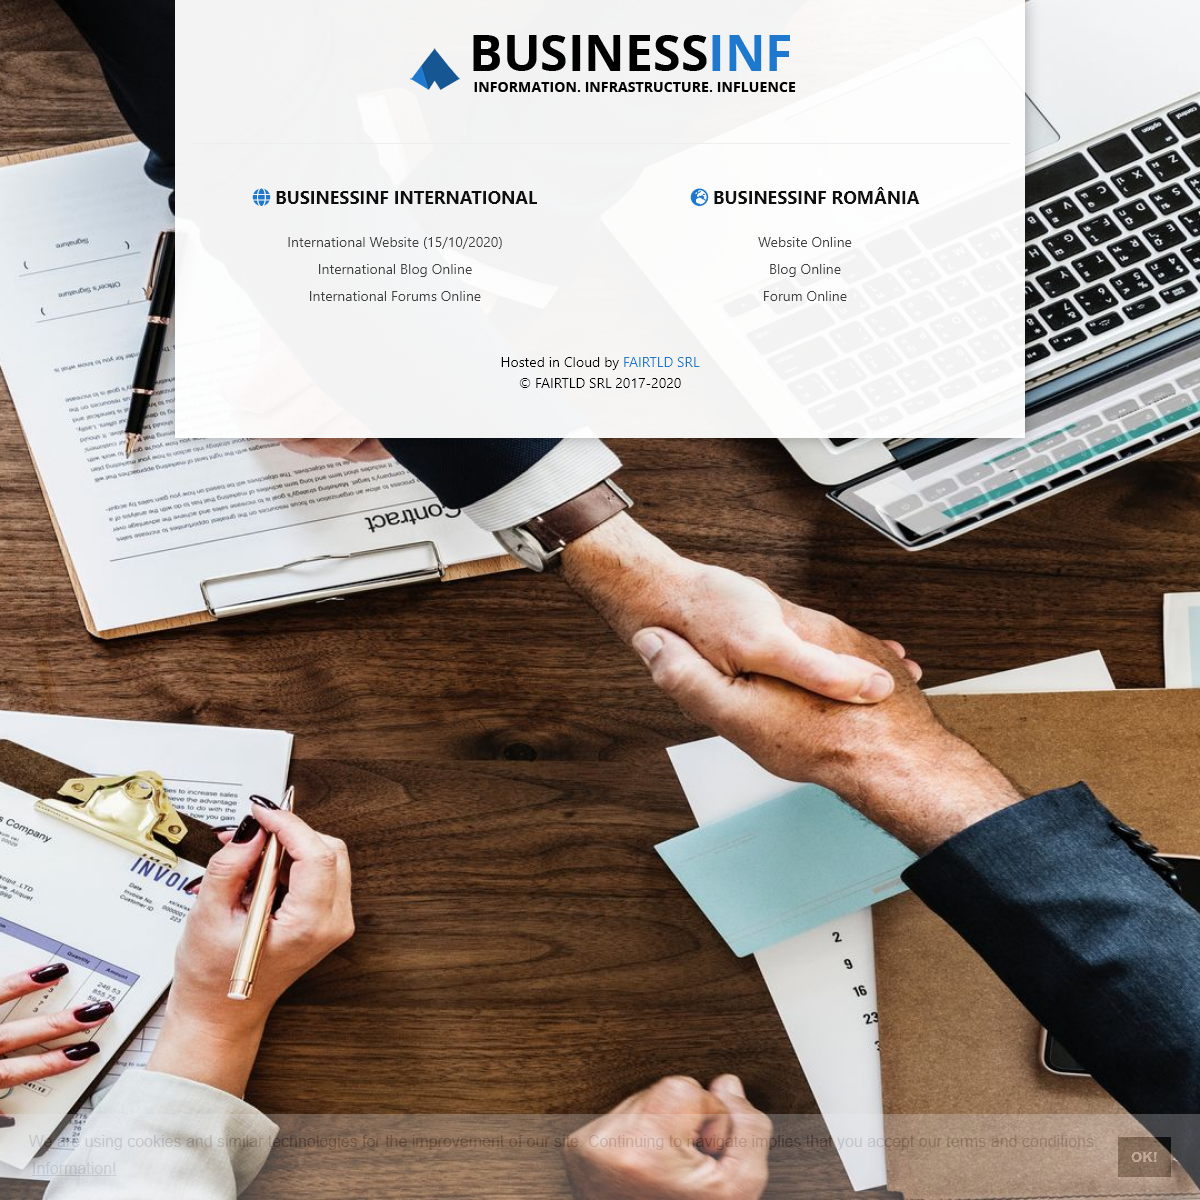 BusinessINF- Official Portal for Our Websites, Business Community Forums and Blogs